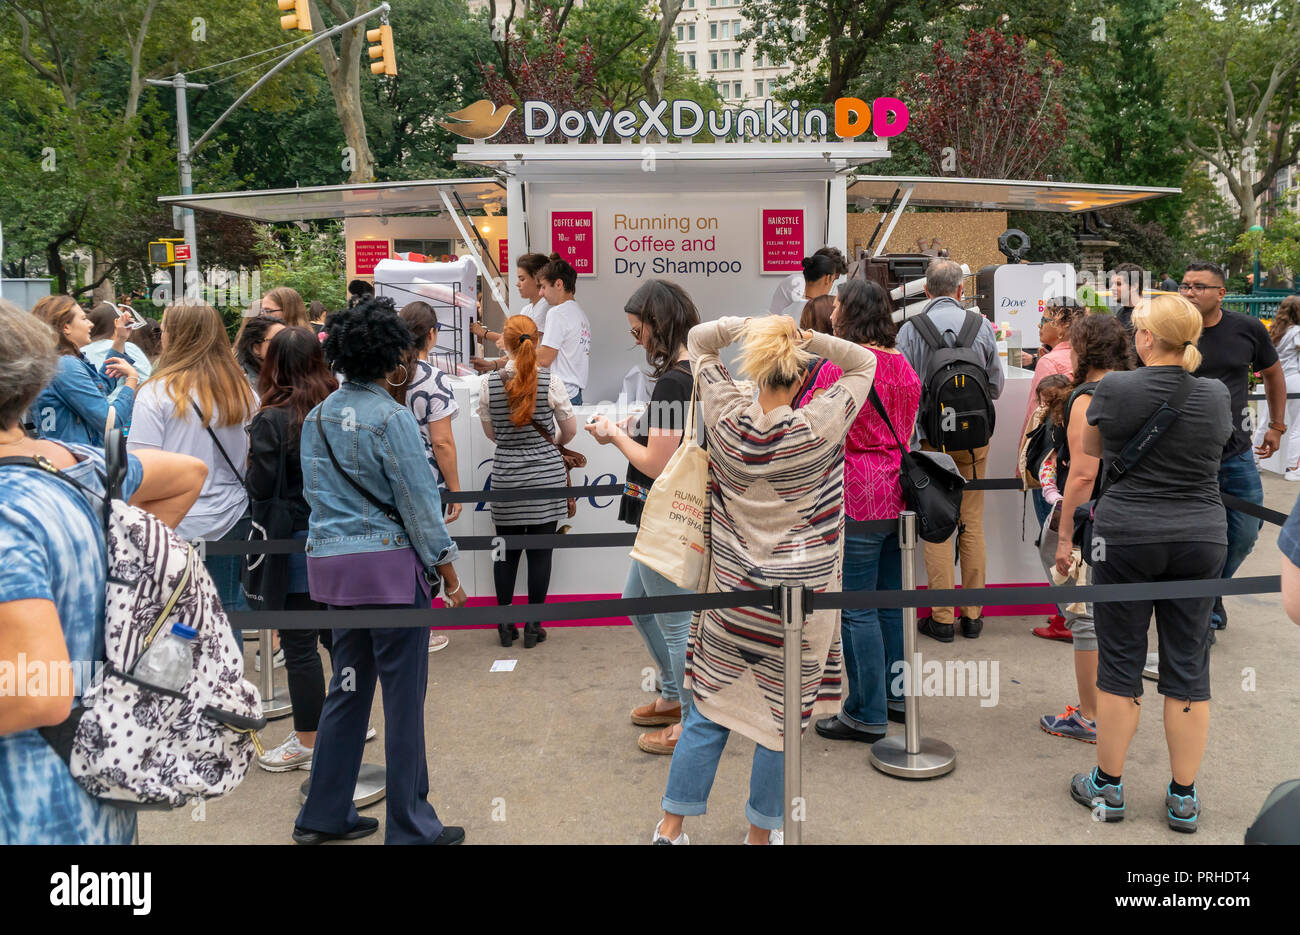 Crowds line up at the Dunkin' and Dove collaboration branding event in Flatiron Plaza in New York on Monday, October 1, 2018. Visitors were treated to free cups of coffee and samples of Unilever's Dove brand dry shampoo. Apparently, according to the organizers women run on Dunkin' and dry shampoo enabling them to quickly get up and out in the morning. Dunkin' Brands recently changed their name dropping the 'donuts' moniker to better reflect that 60 percent of their sales are coffee beverages. (© Richard B. Levine) - Stock Image